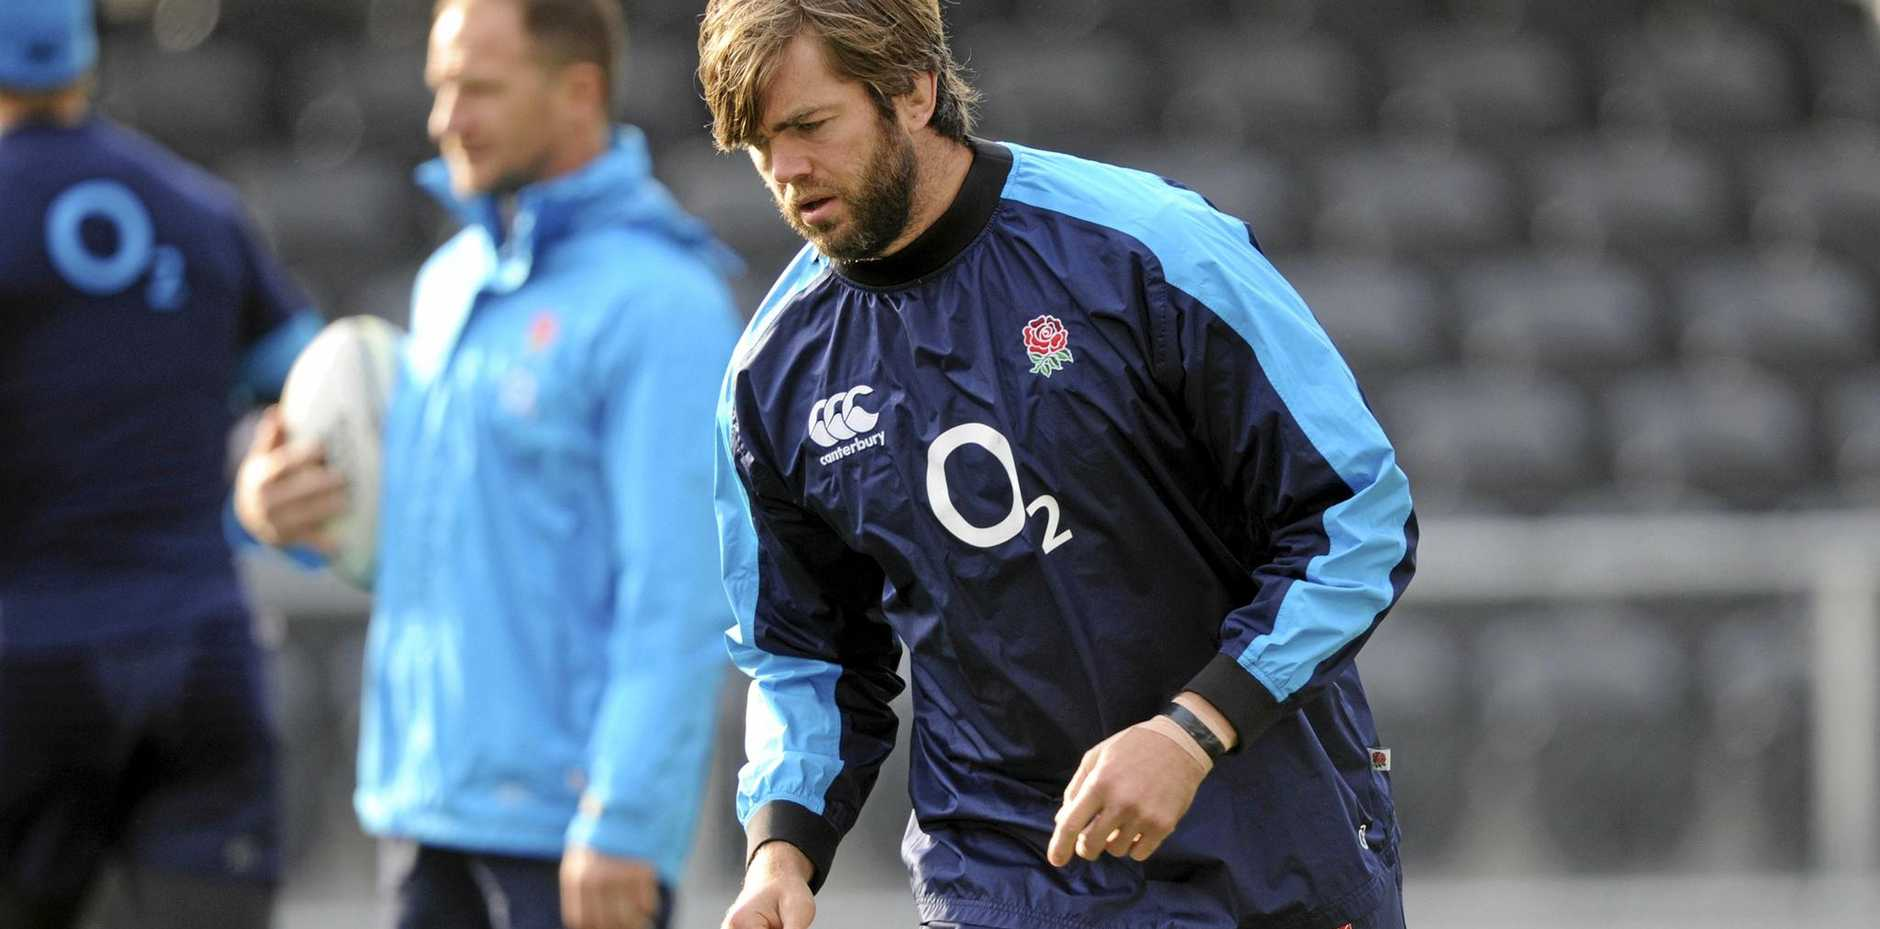 Geoff Parling will join the Rebels next year.